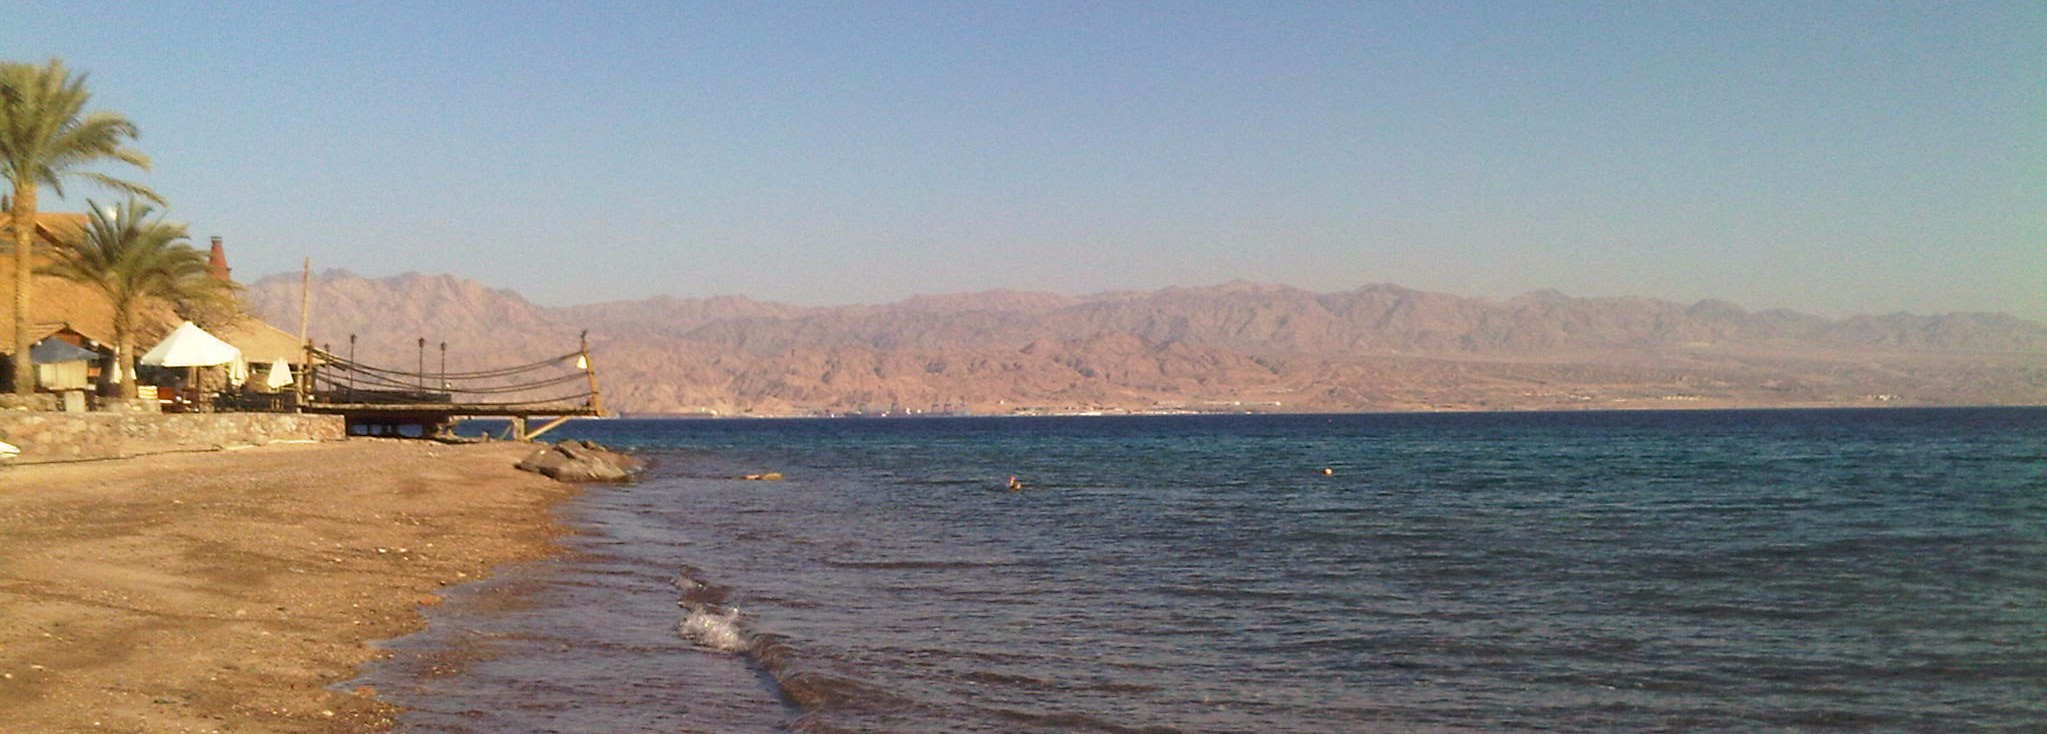 Red_sea_stony_beach_taba_egypt